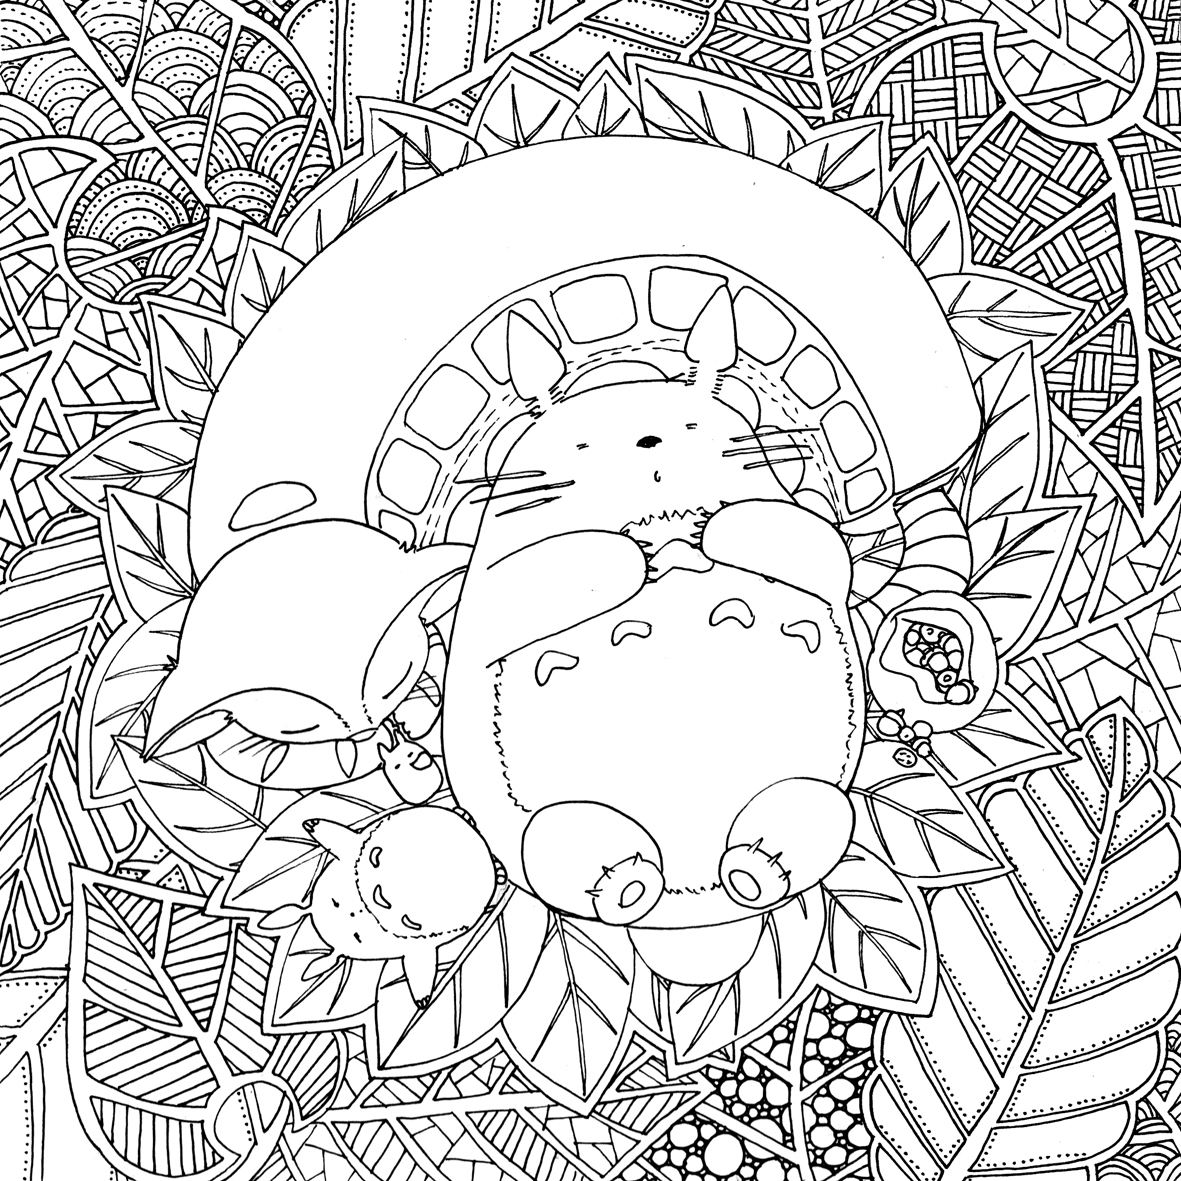 1181x1181 Doodles And Totoro Part Wordpress Papercraft With Coloring Pages